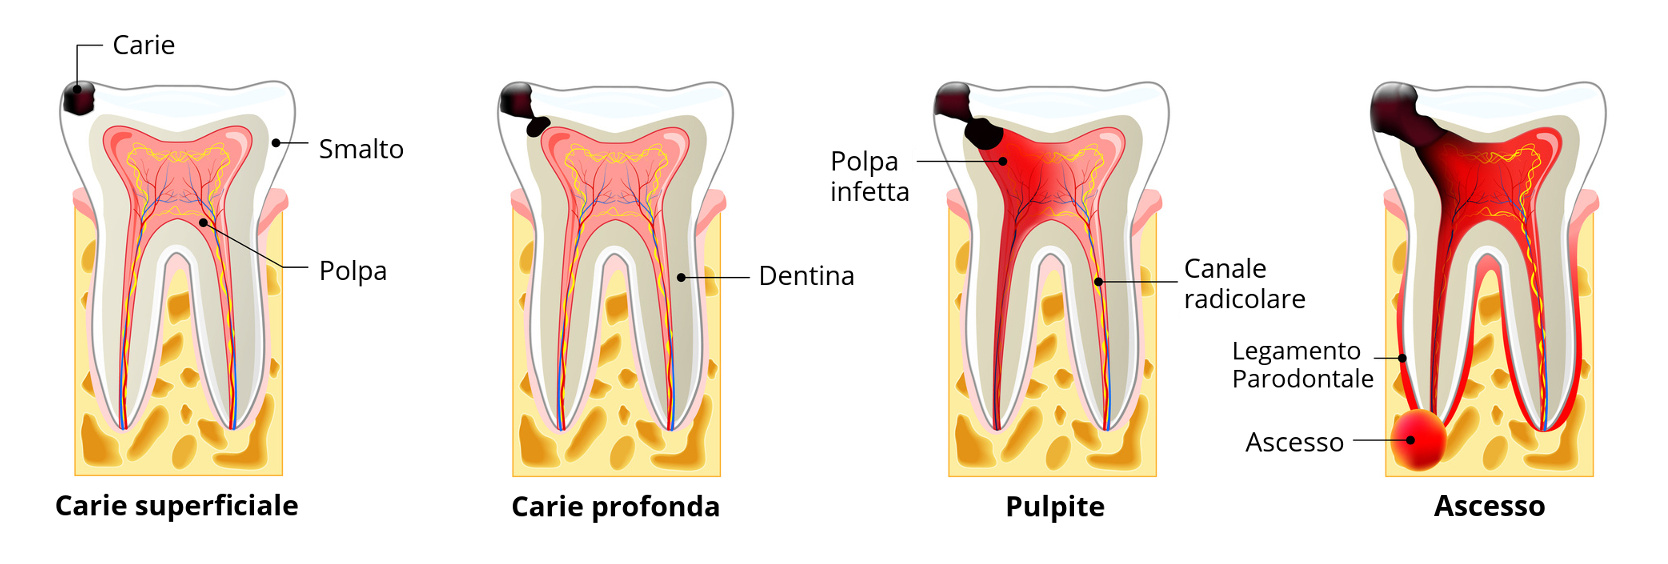 the stages of caries development